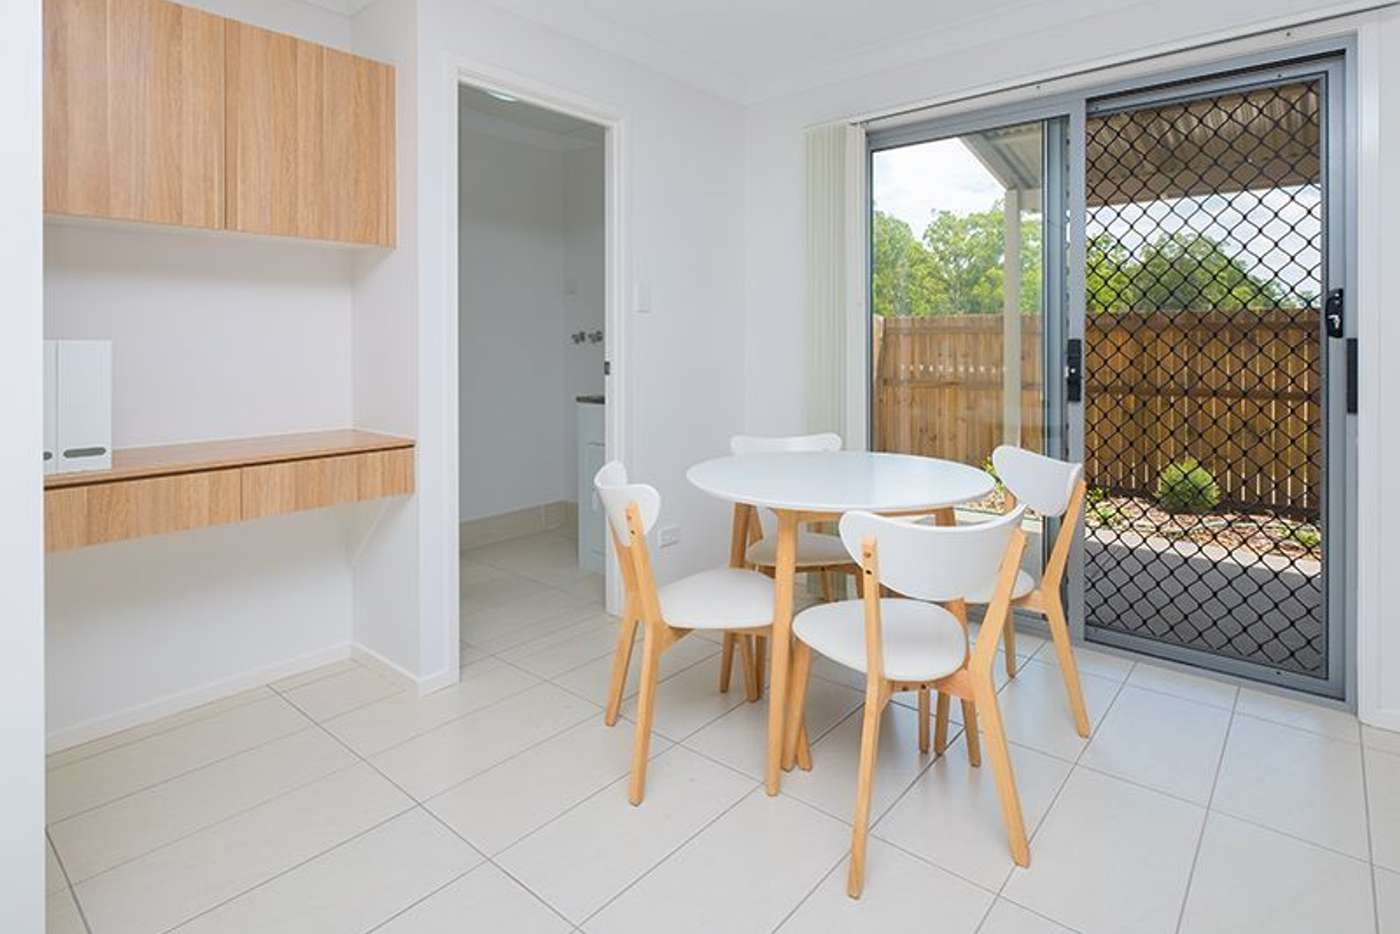 Sixth view of Homely townhouse listing, 17/12 kimberley close, Redbank Plains QLD 4301